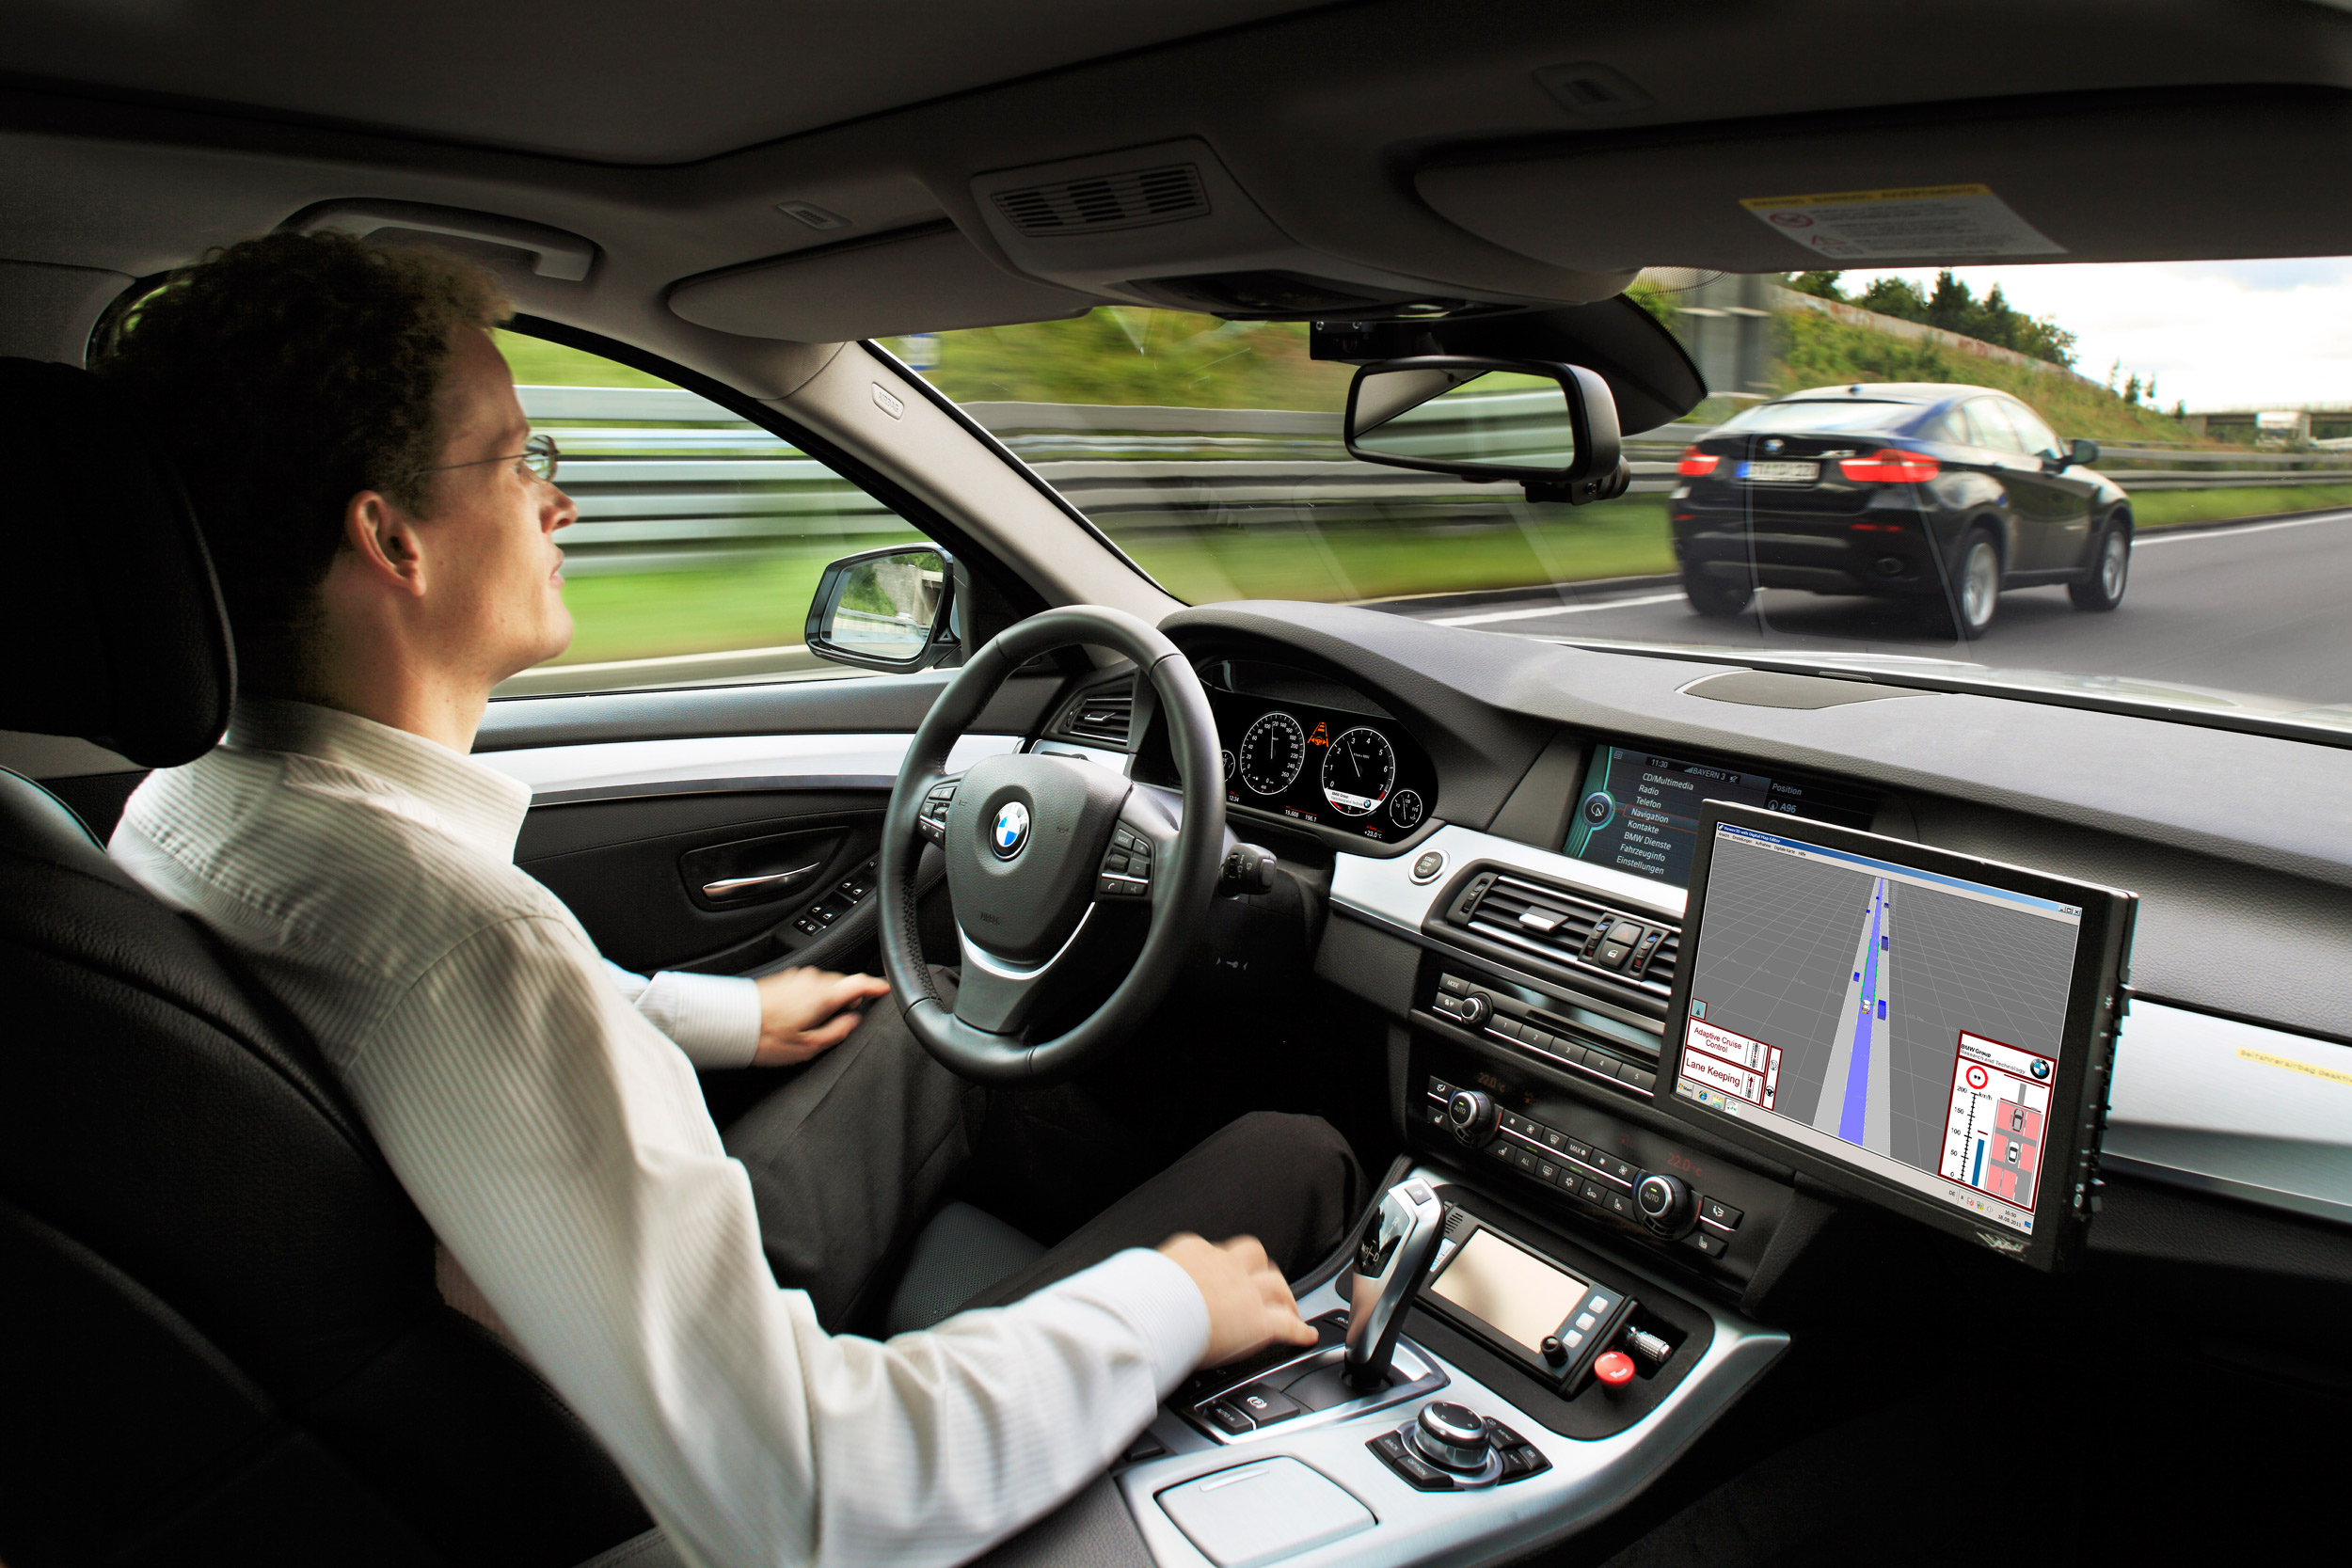 BMW self-driving interior